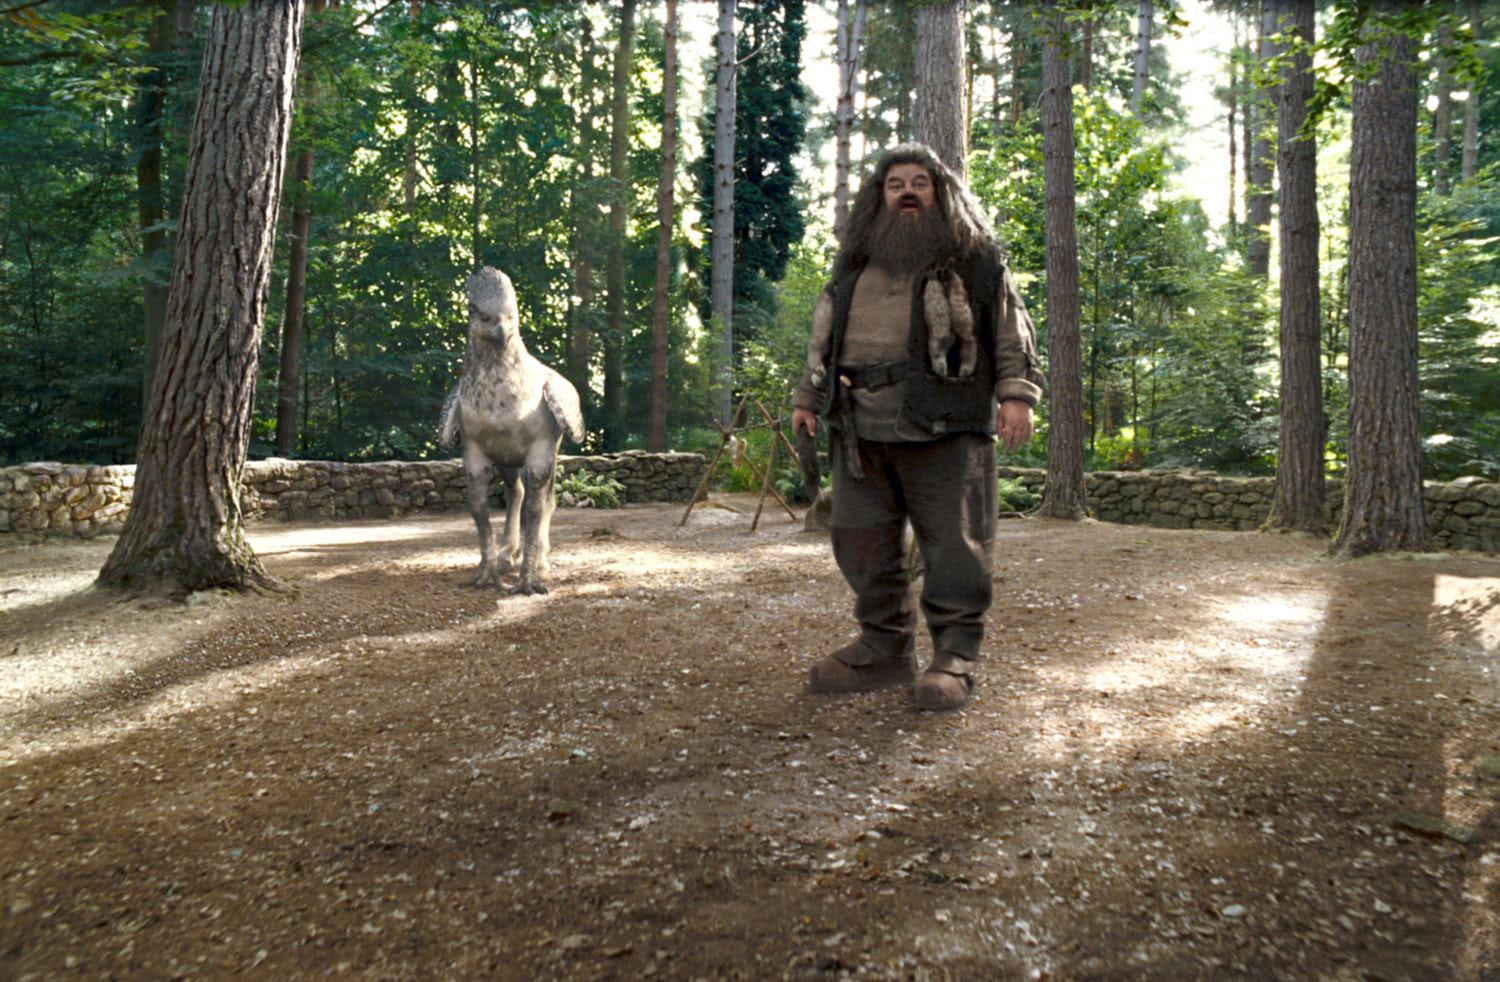 Hagrid and Buckbeak